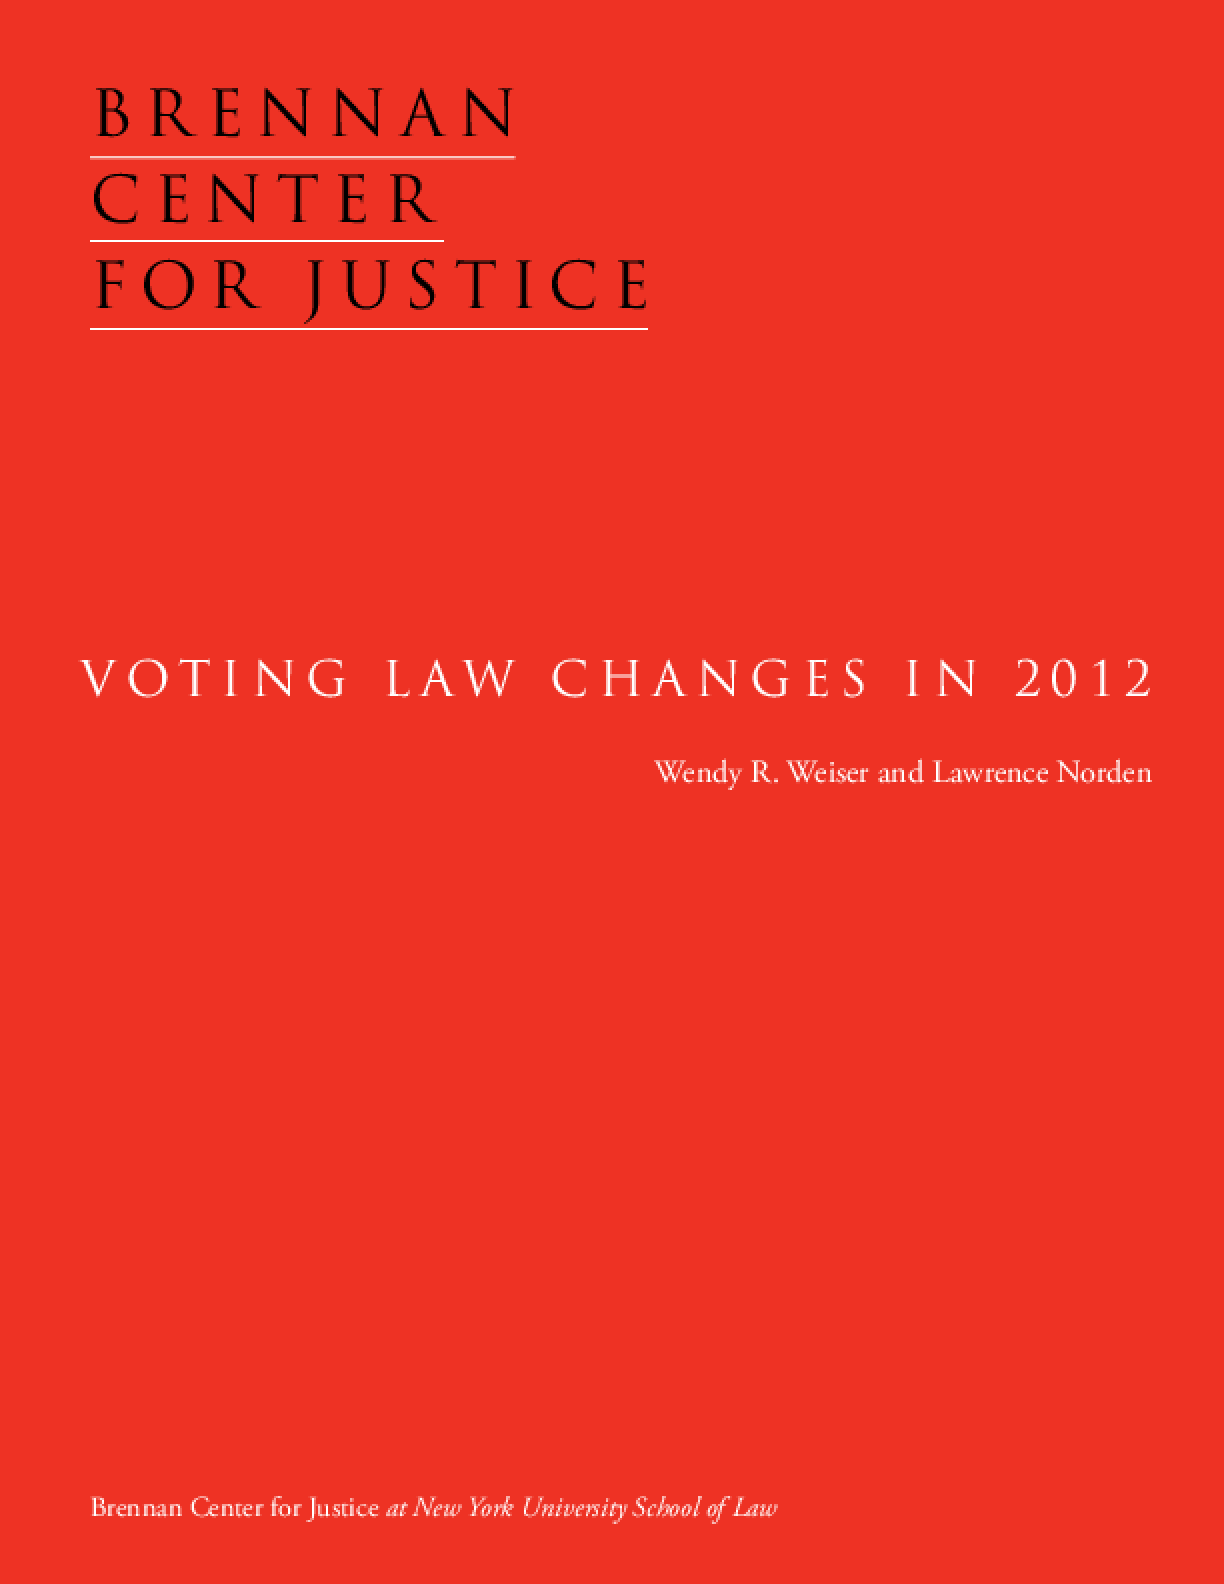 Voting Law Changes in 2012